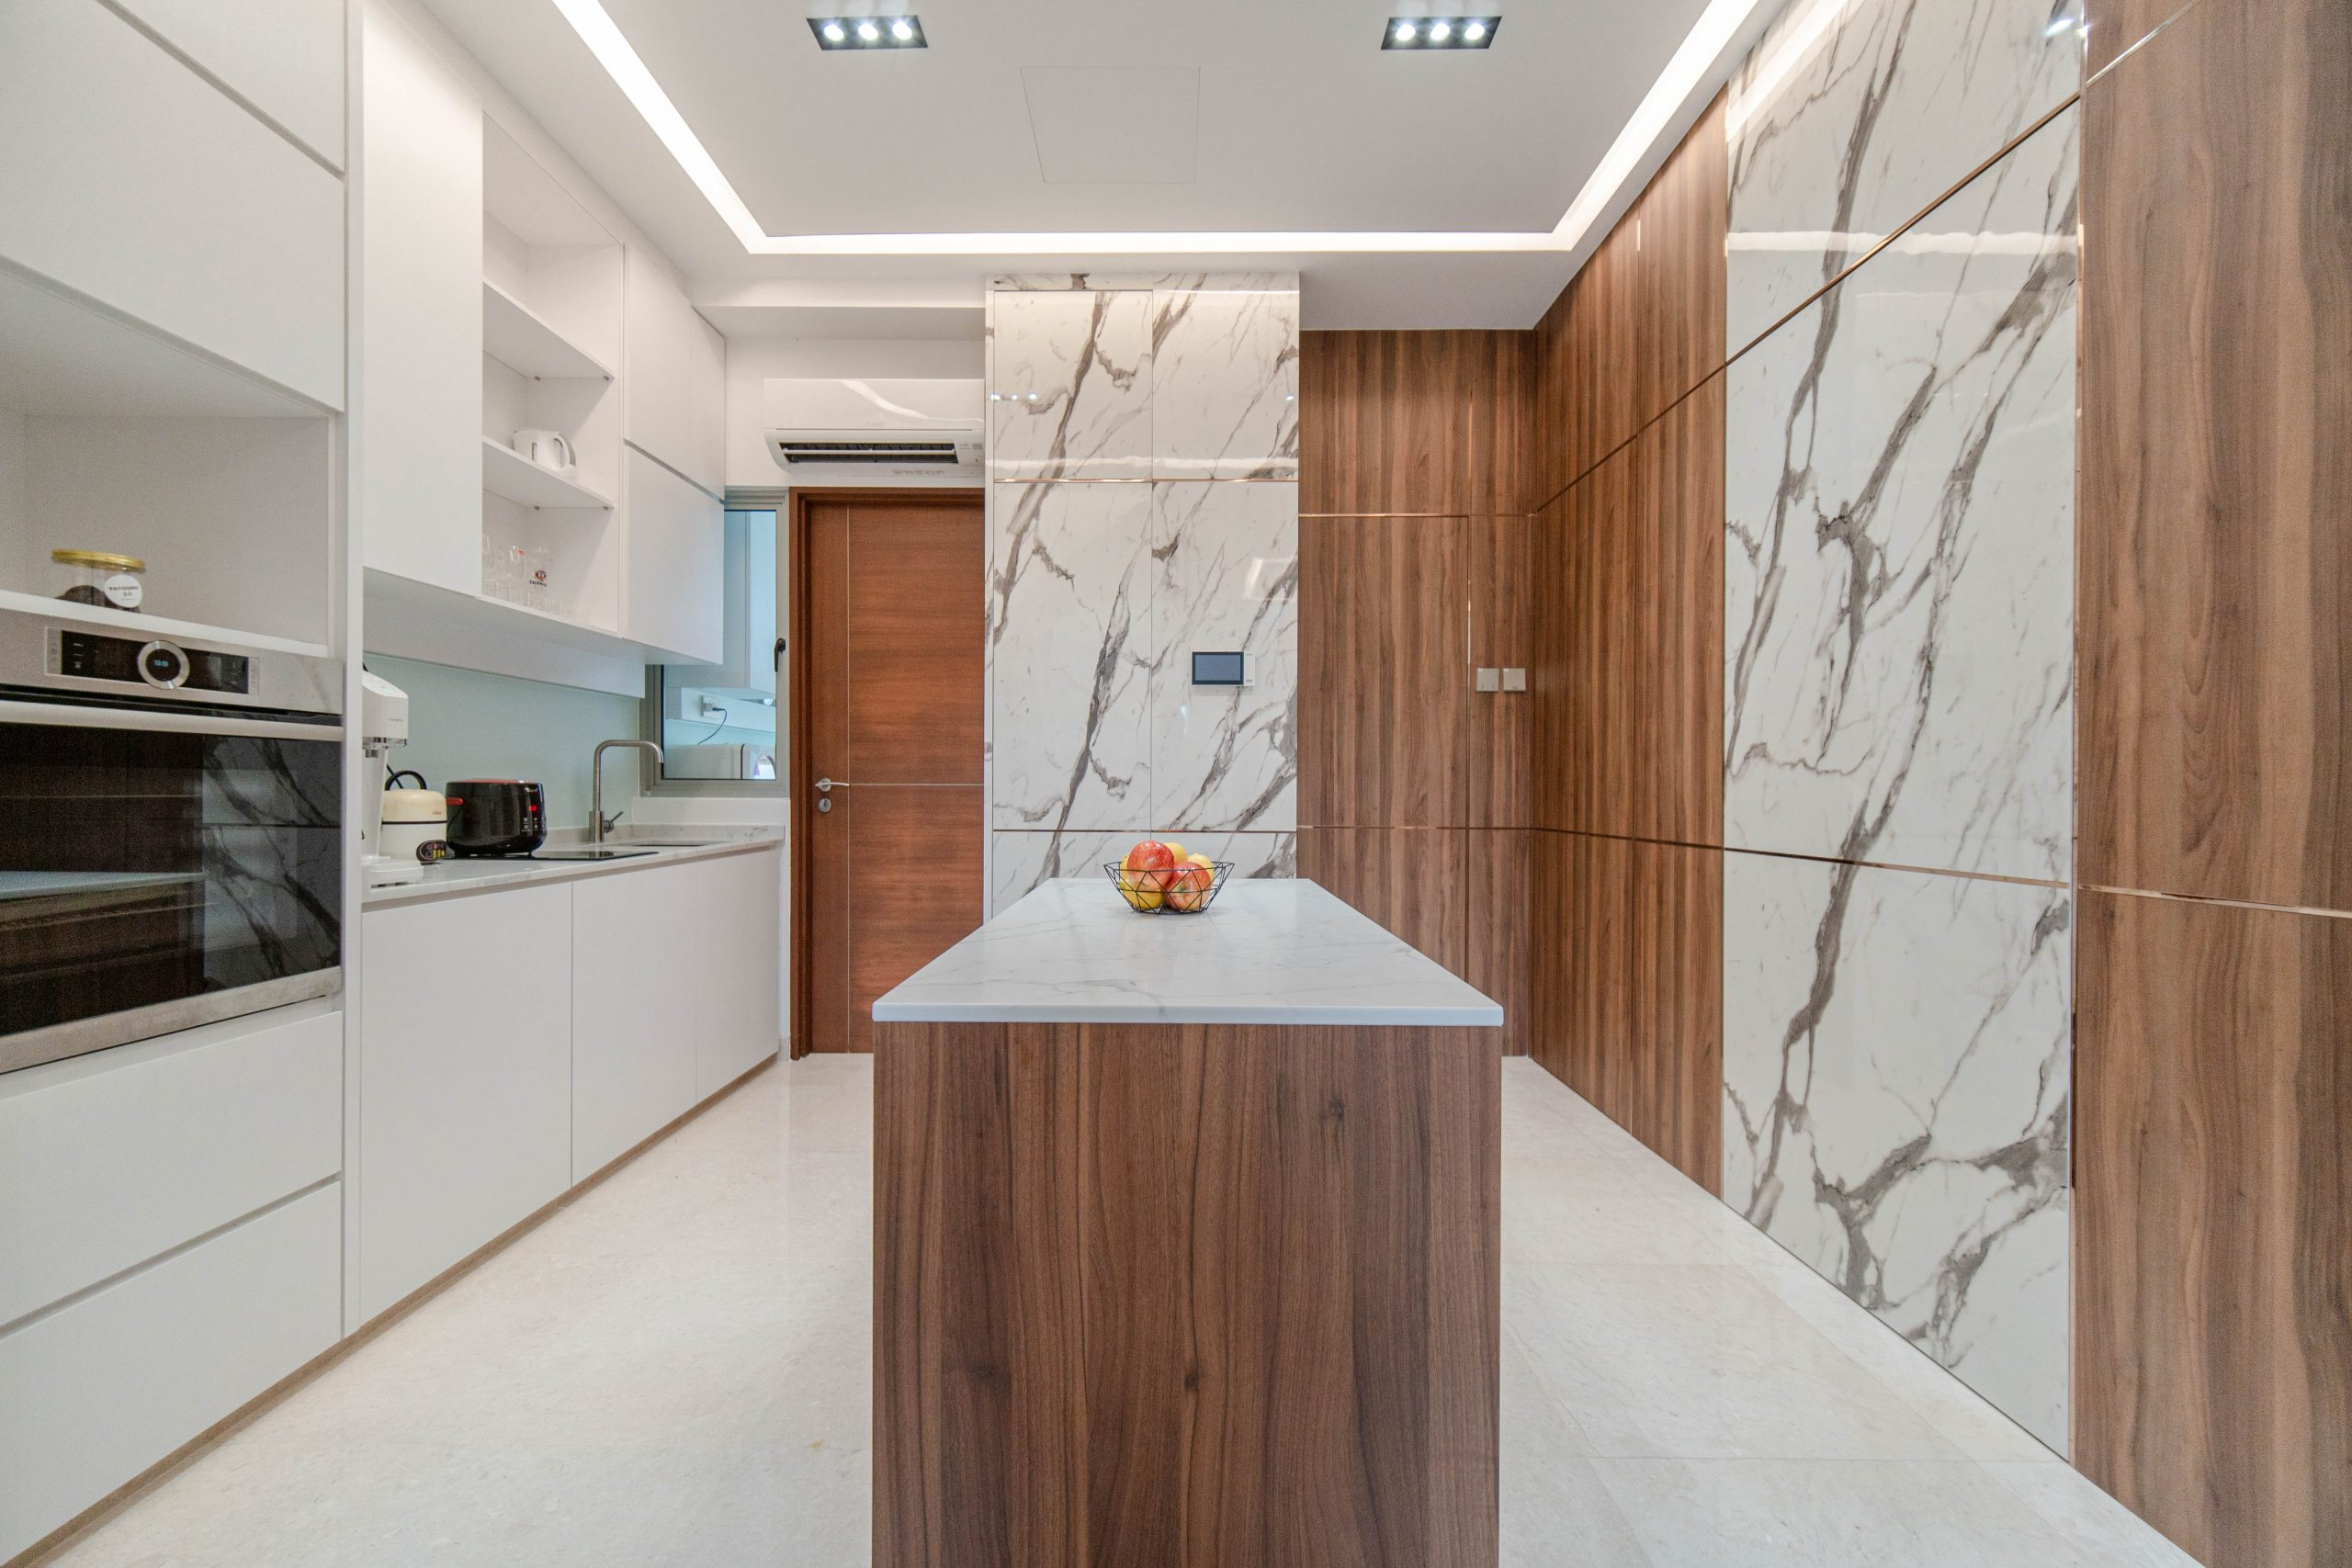 Which Kitchen Counter-Top can I choose from?